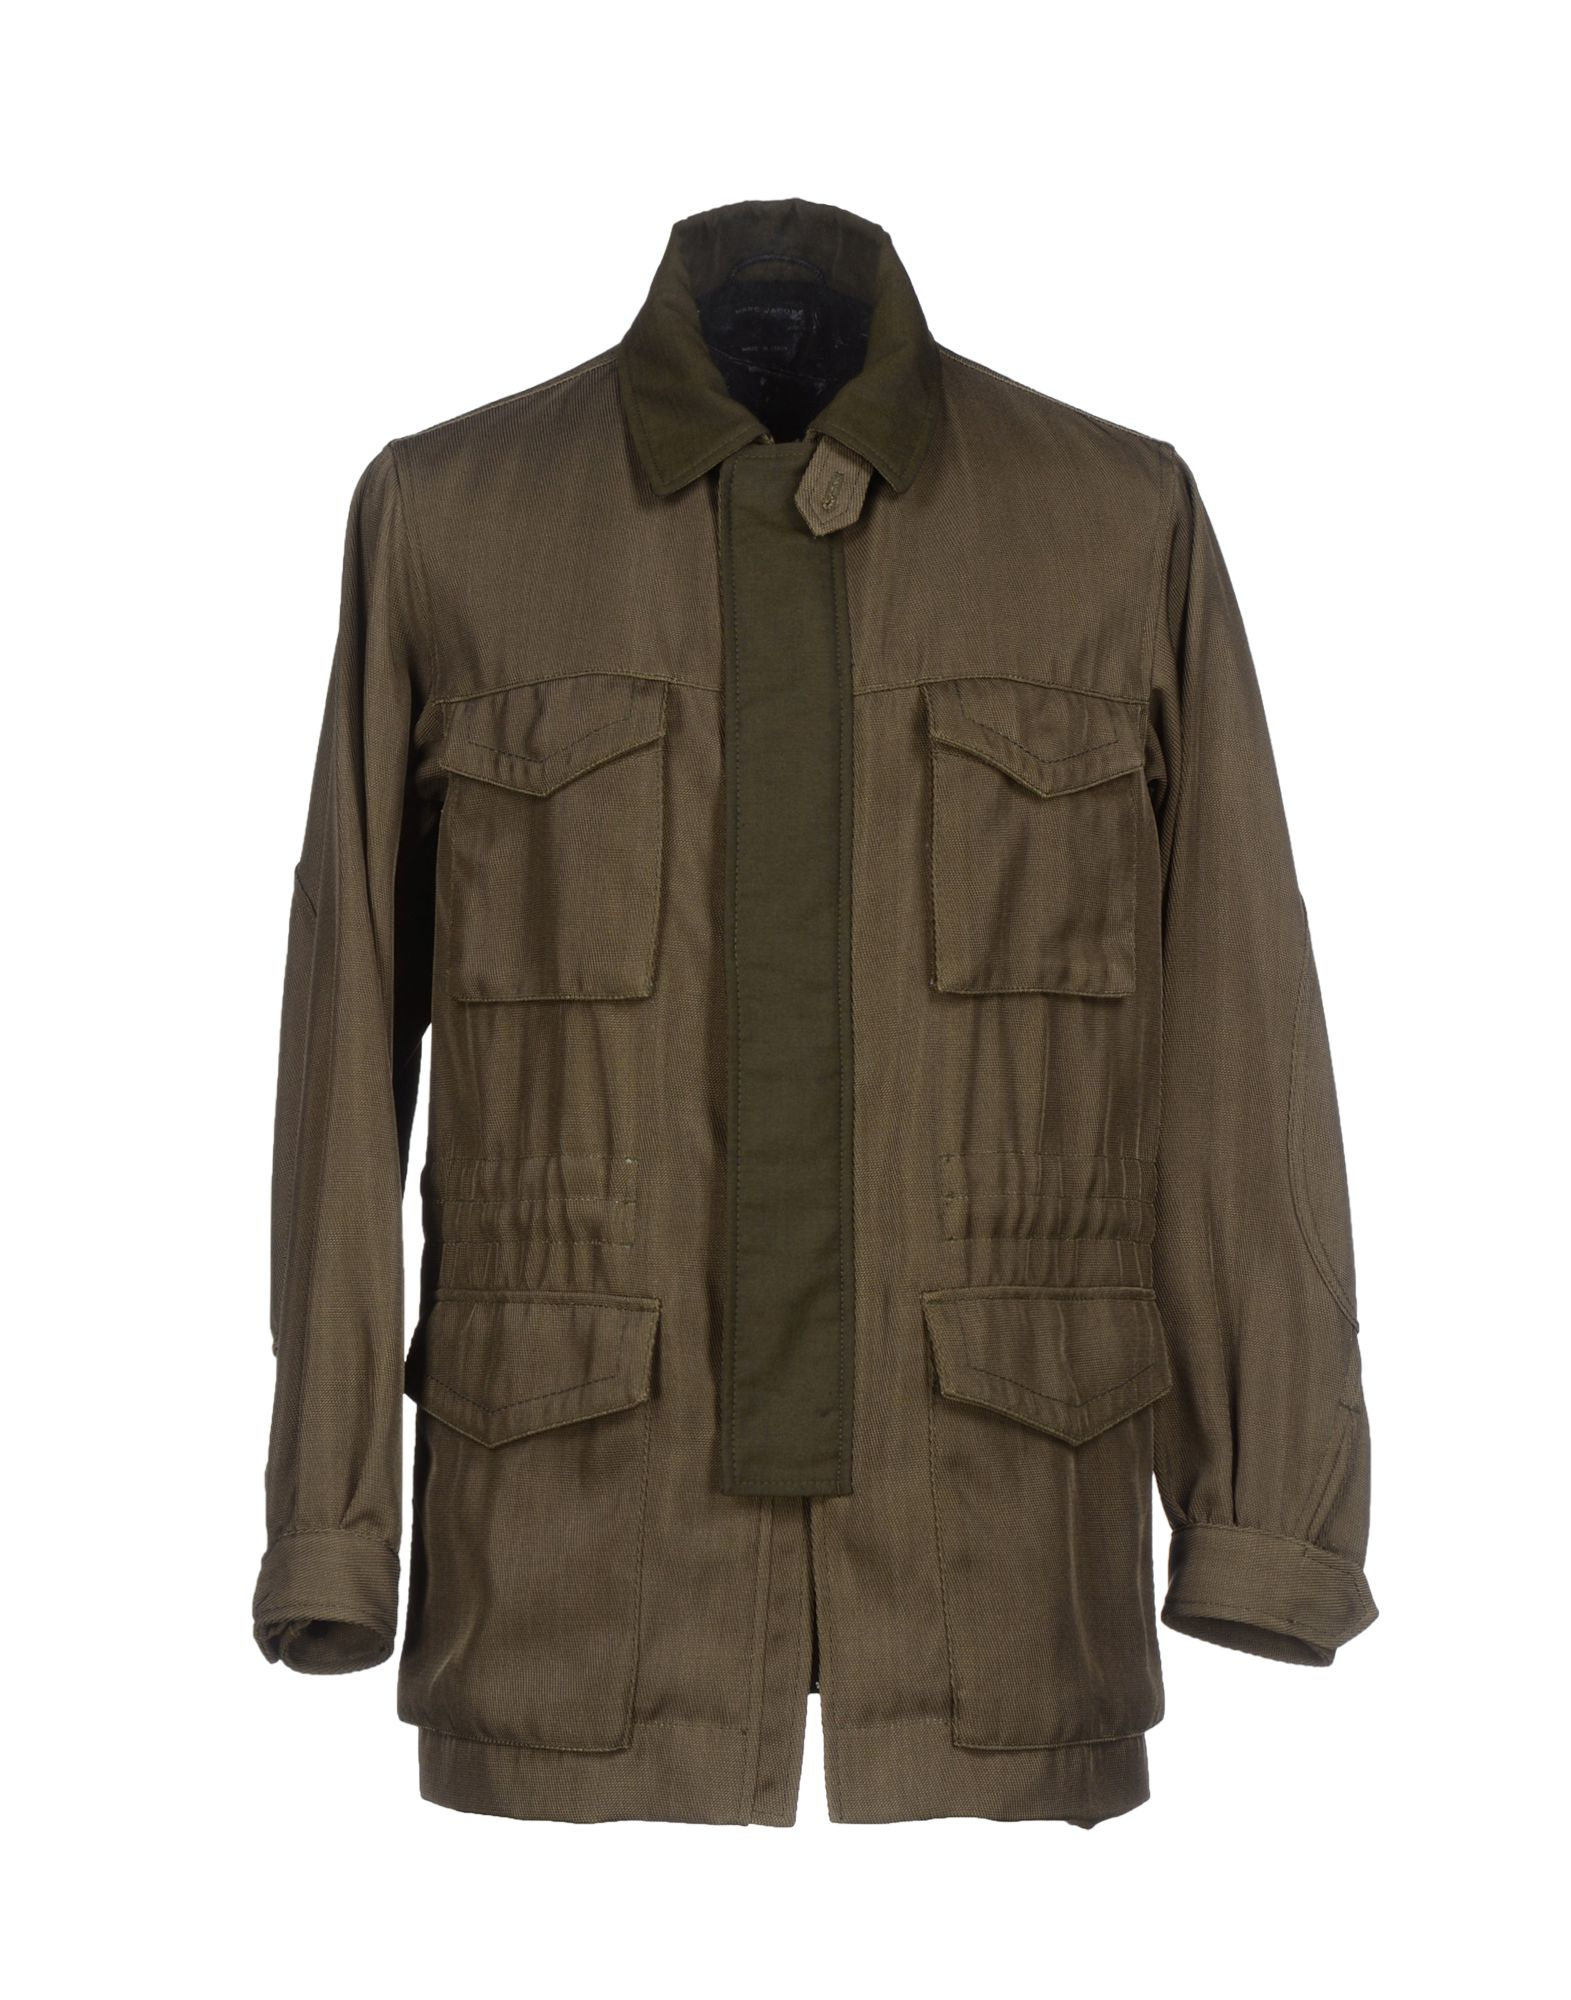 Marc jacobs Jacket in Green for Men | Lyst